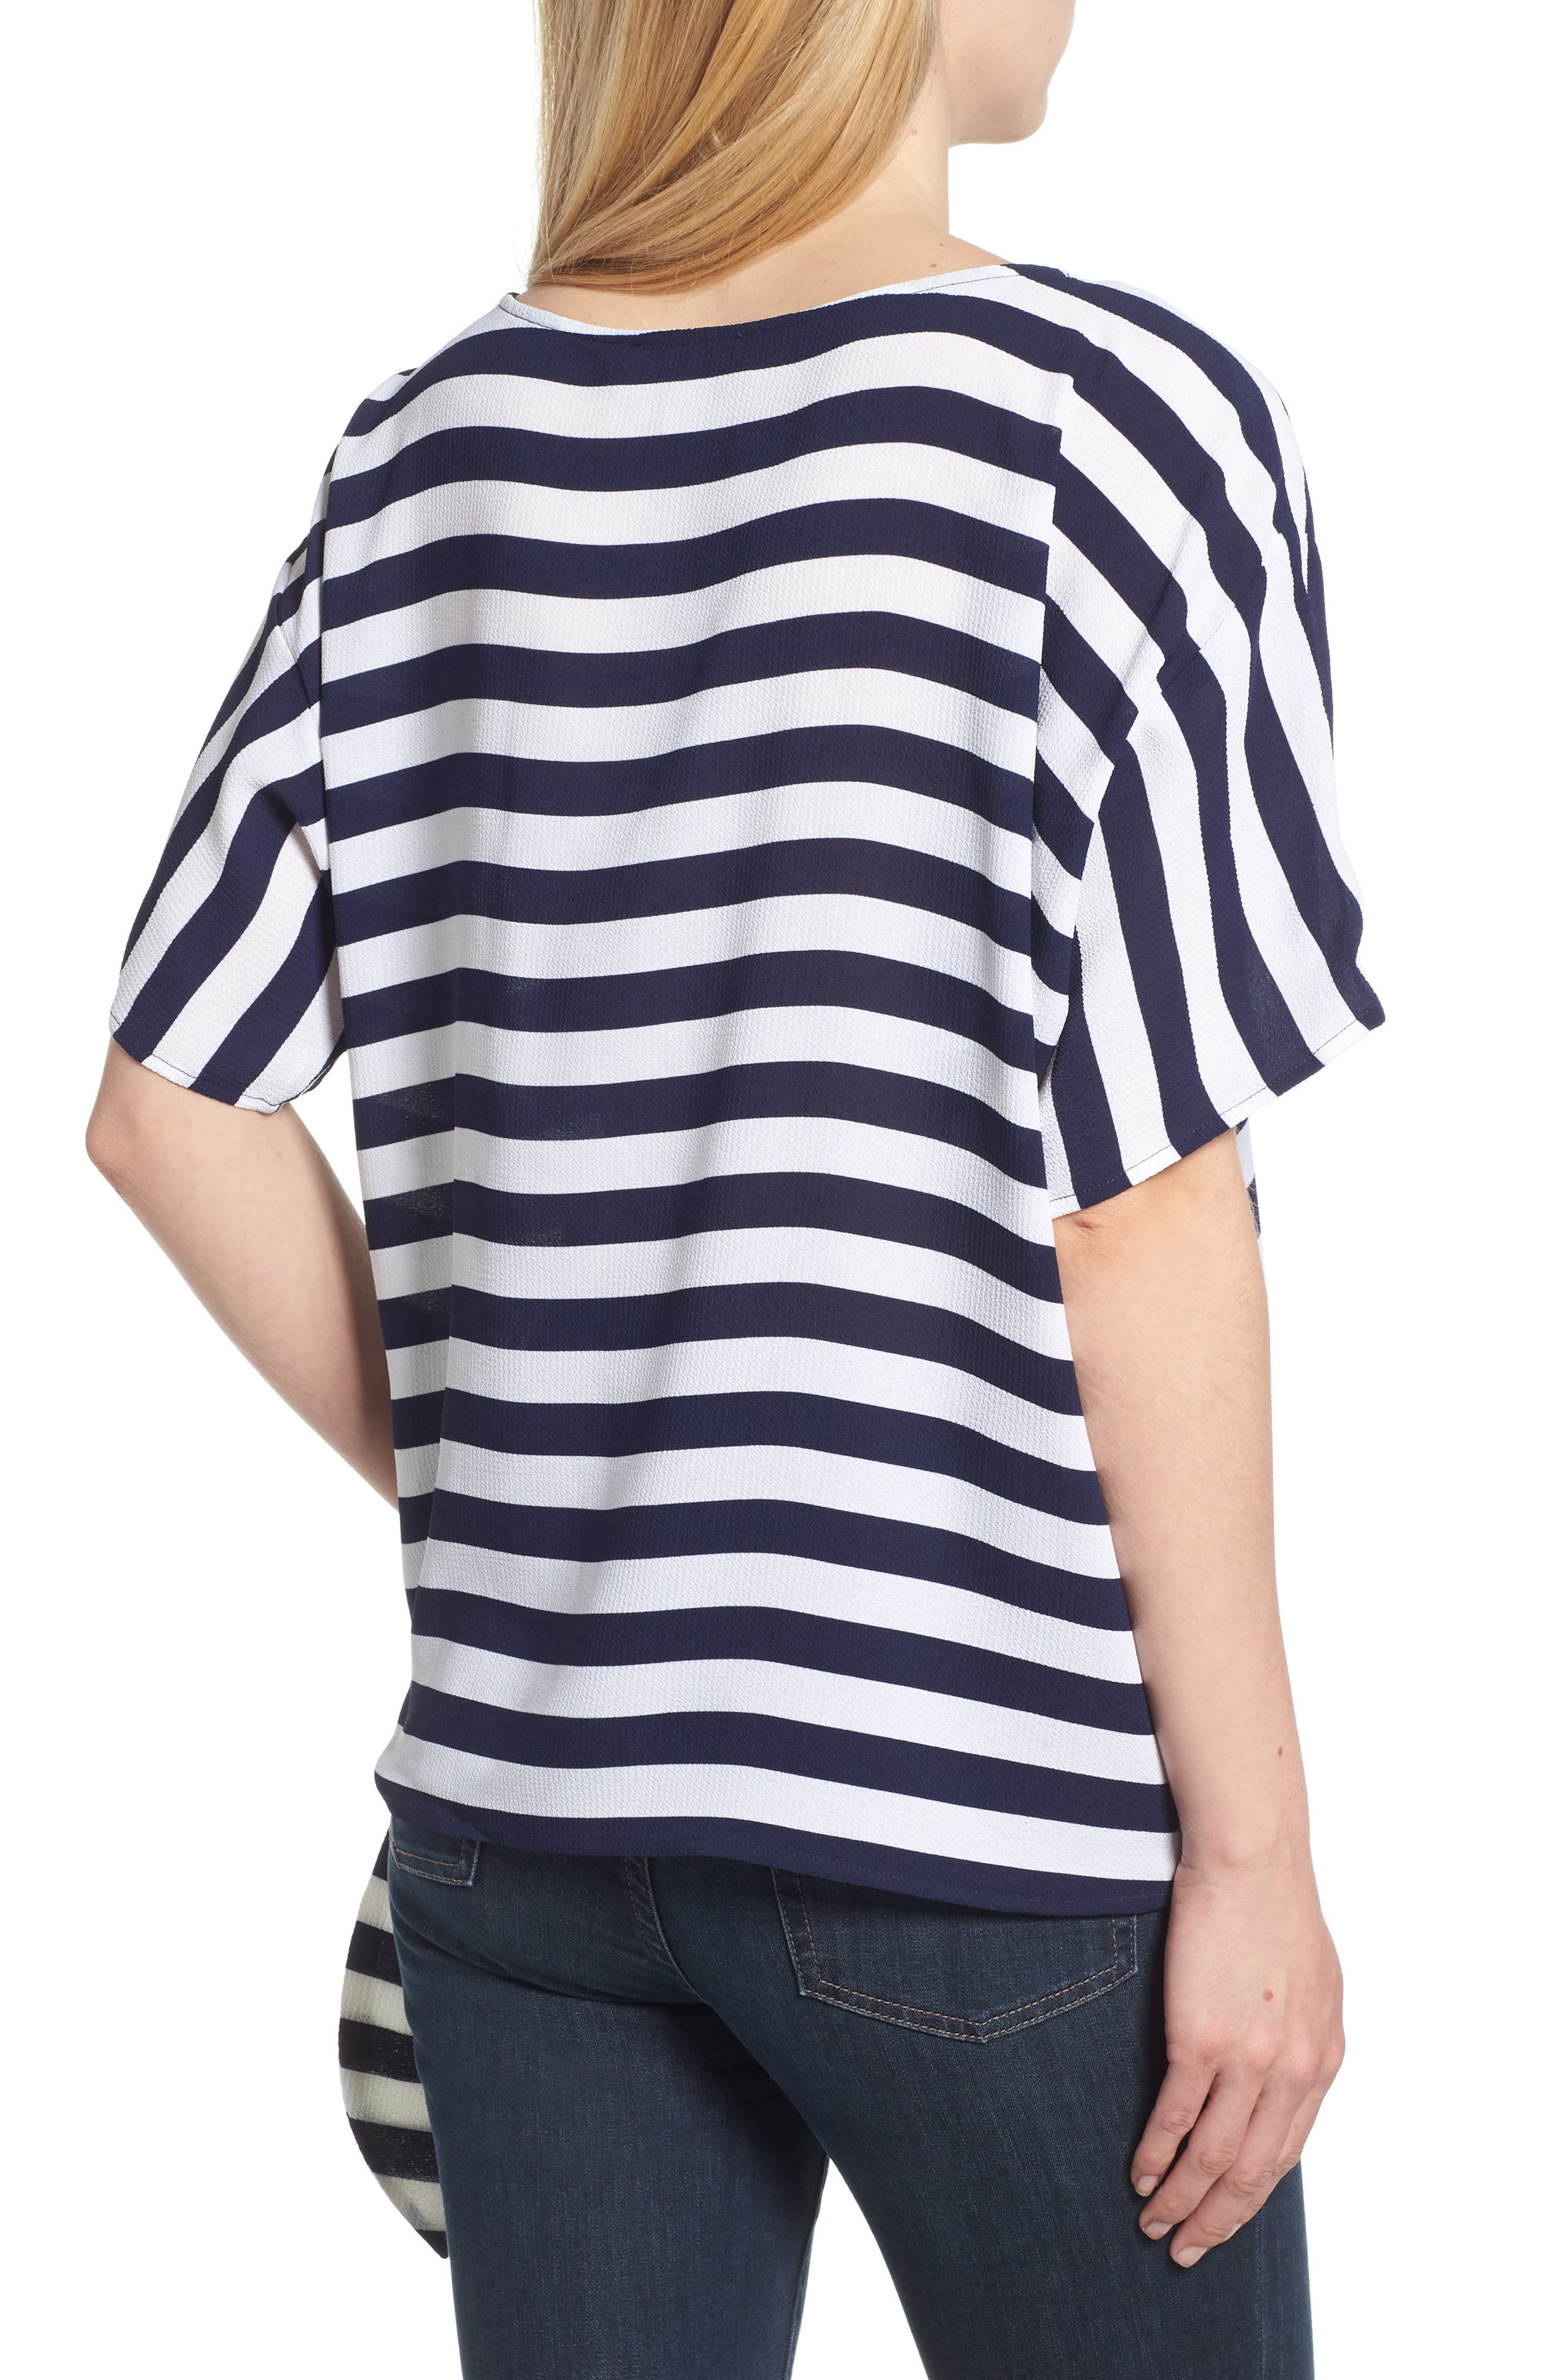 MICHAEL Michael Kors Side Tie Striped Top,                             Alternate thumbnail 2, color,                             True Navy